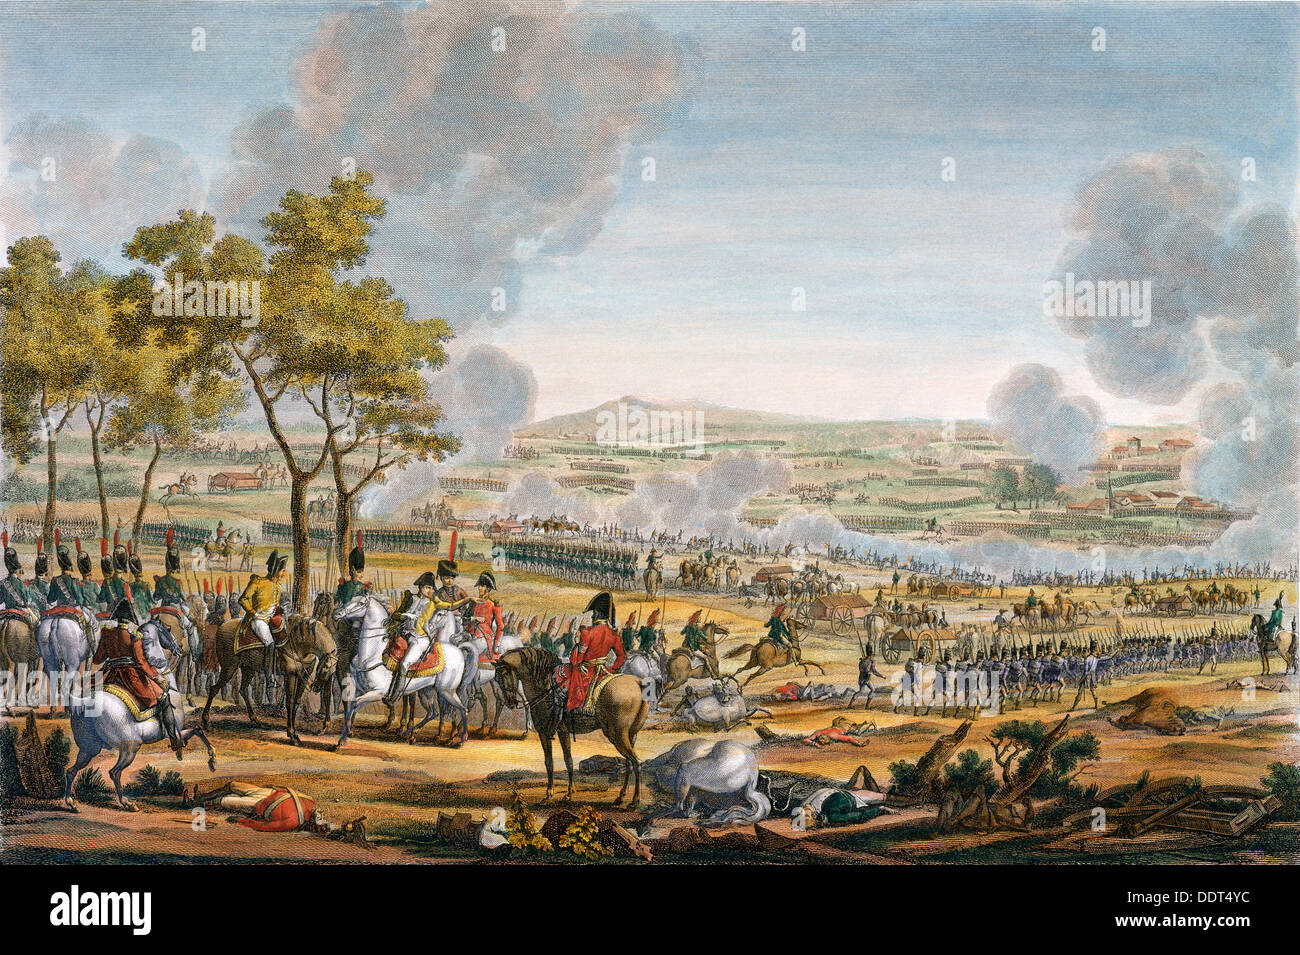 The Battle of Wagram, Austria, 7th July 1809. Artist: Louis Francois Mariage - Stock Image